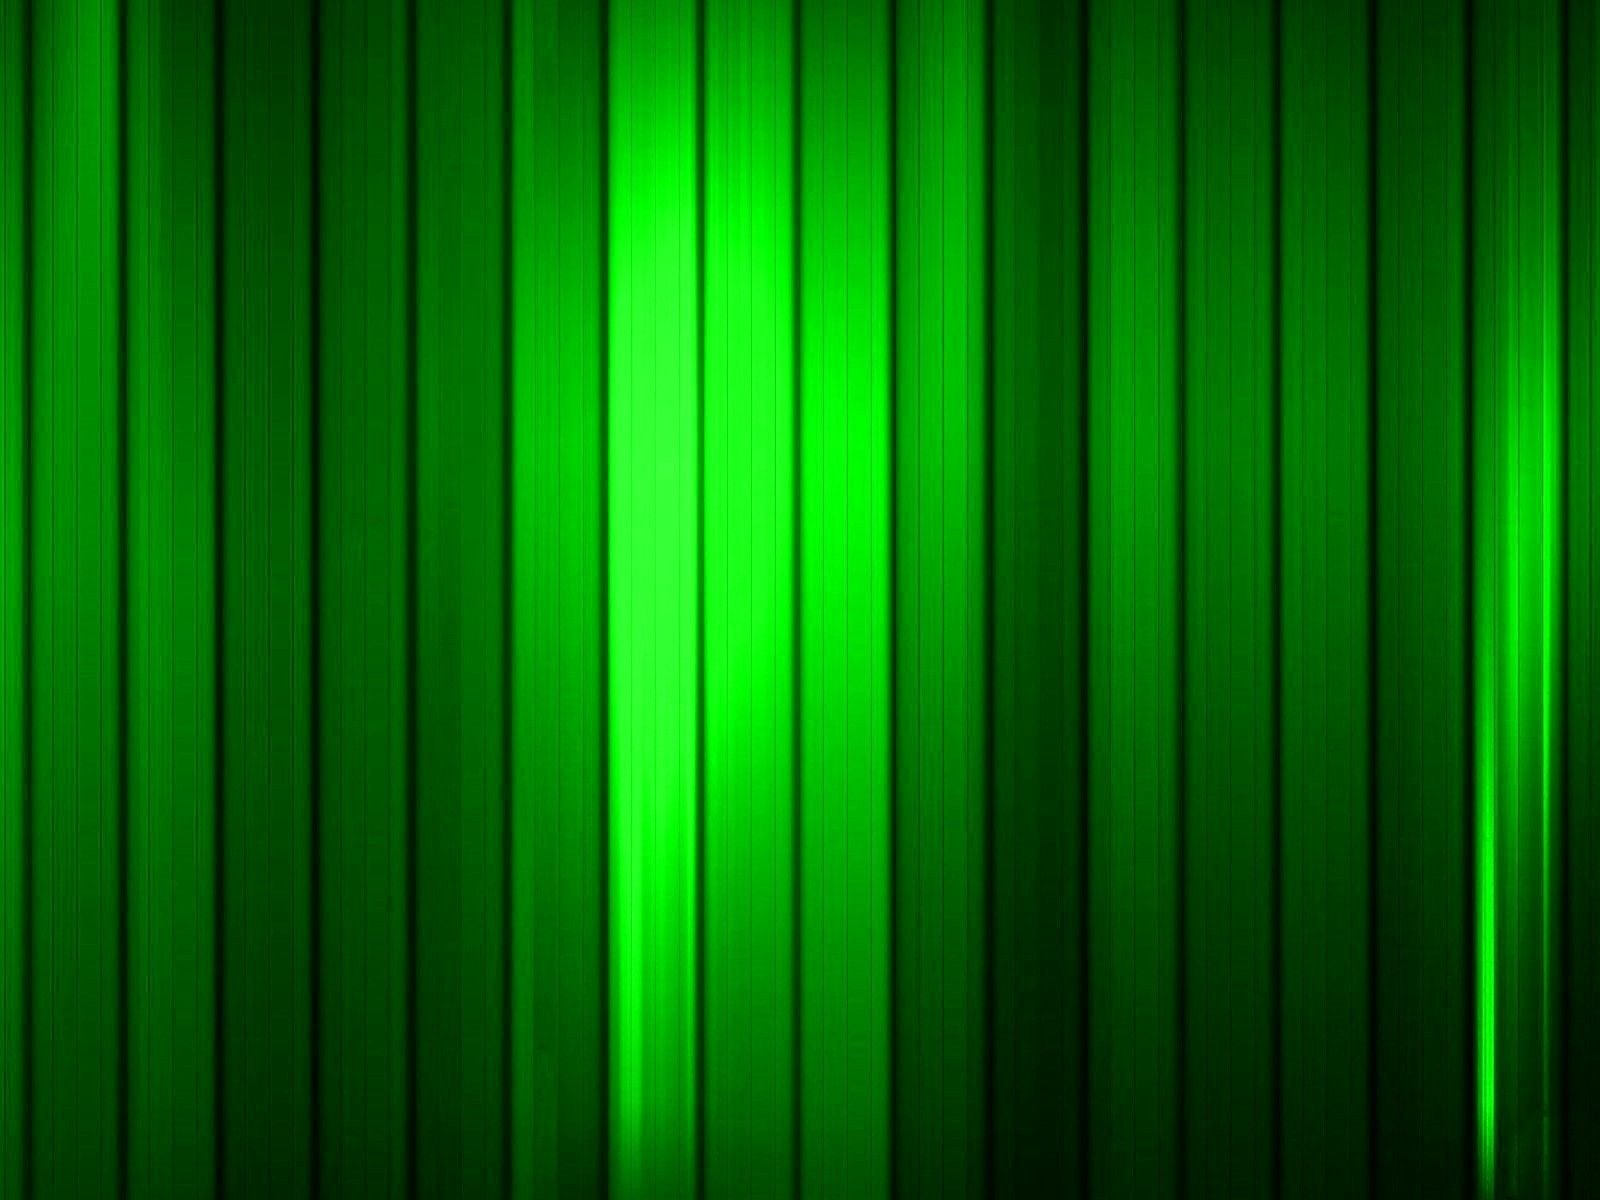 Green Abstract Wallpapers: Find Best Latest Green Abstract